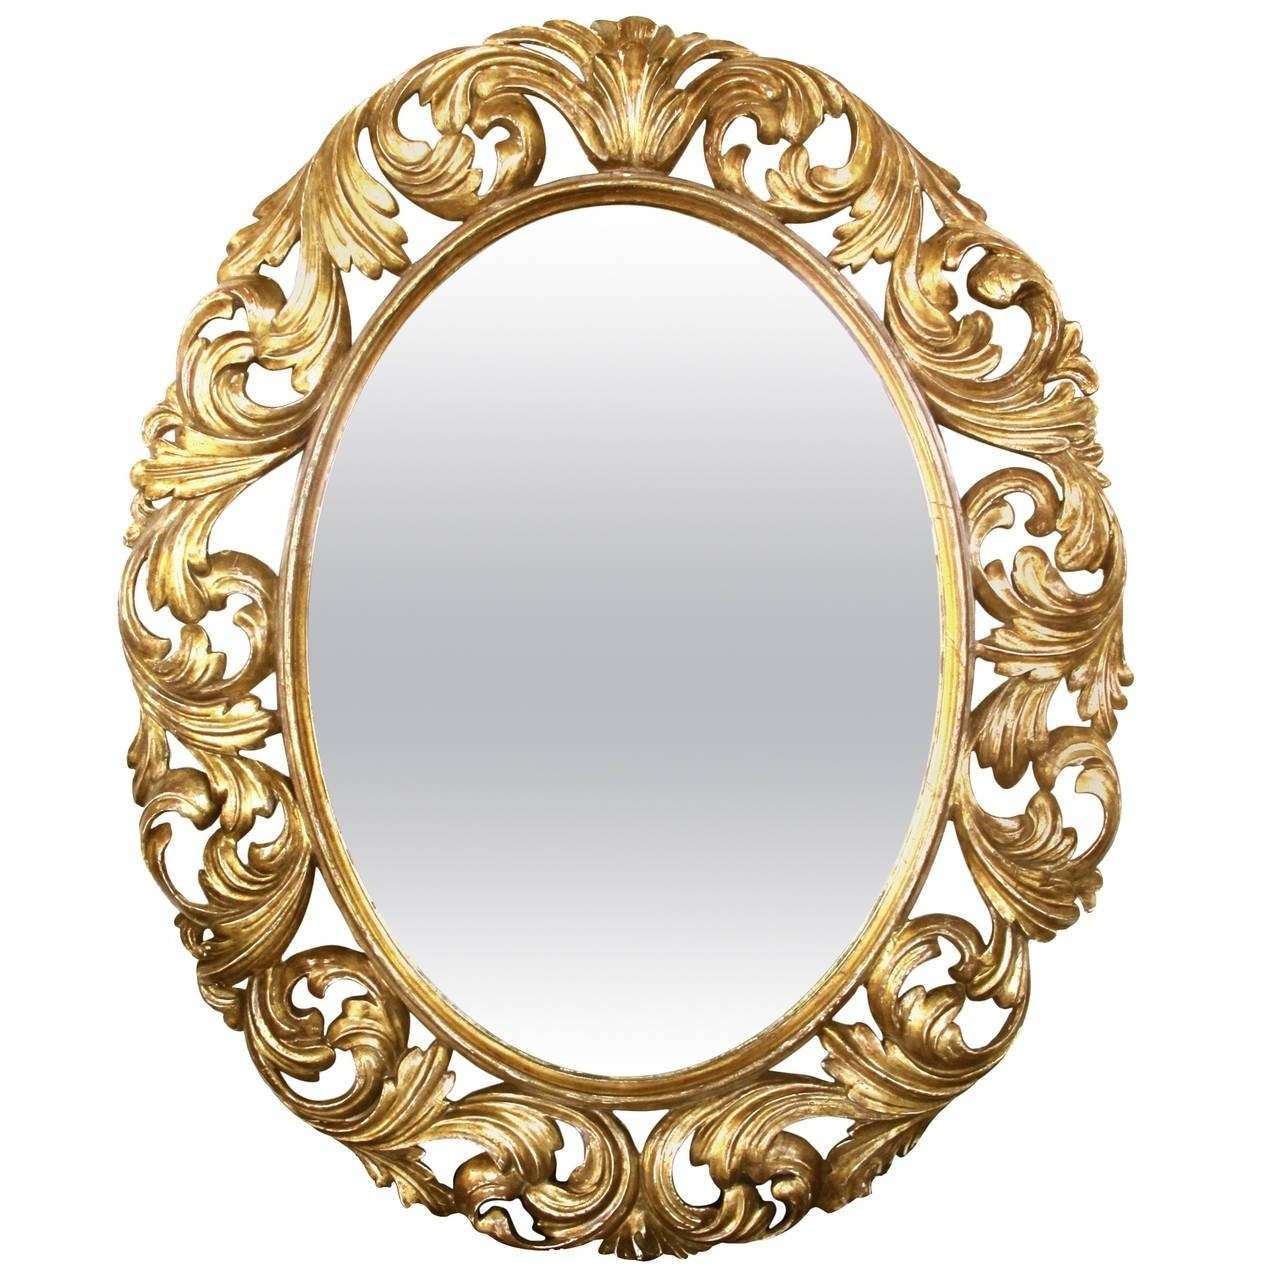 Well-Carved Italian Baroque Style Oval Giltwood Mirror For Sale At intended for Baroque Style Mirrors (Image 23 of 25)